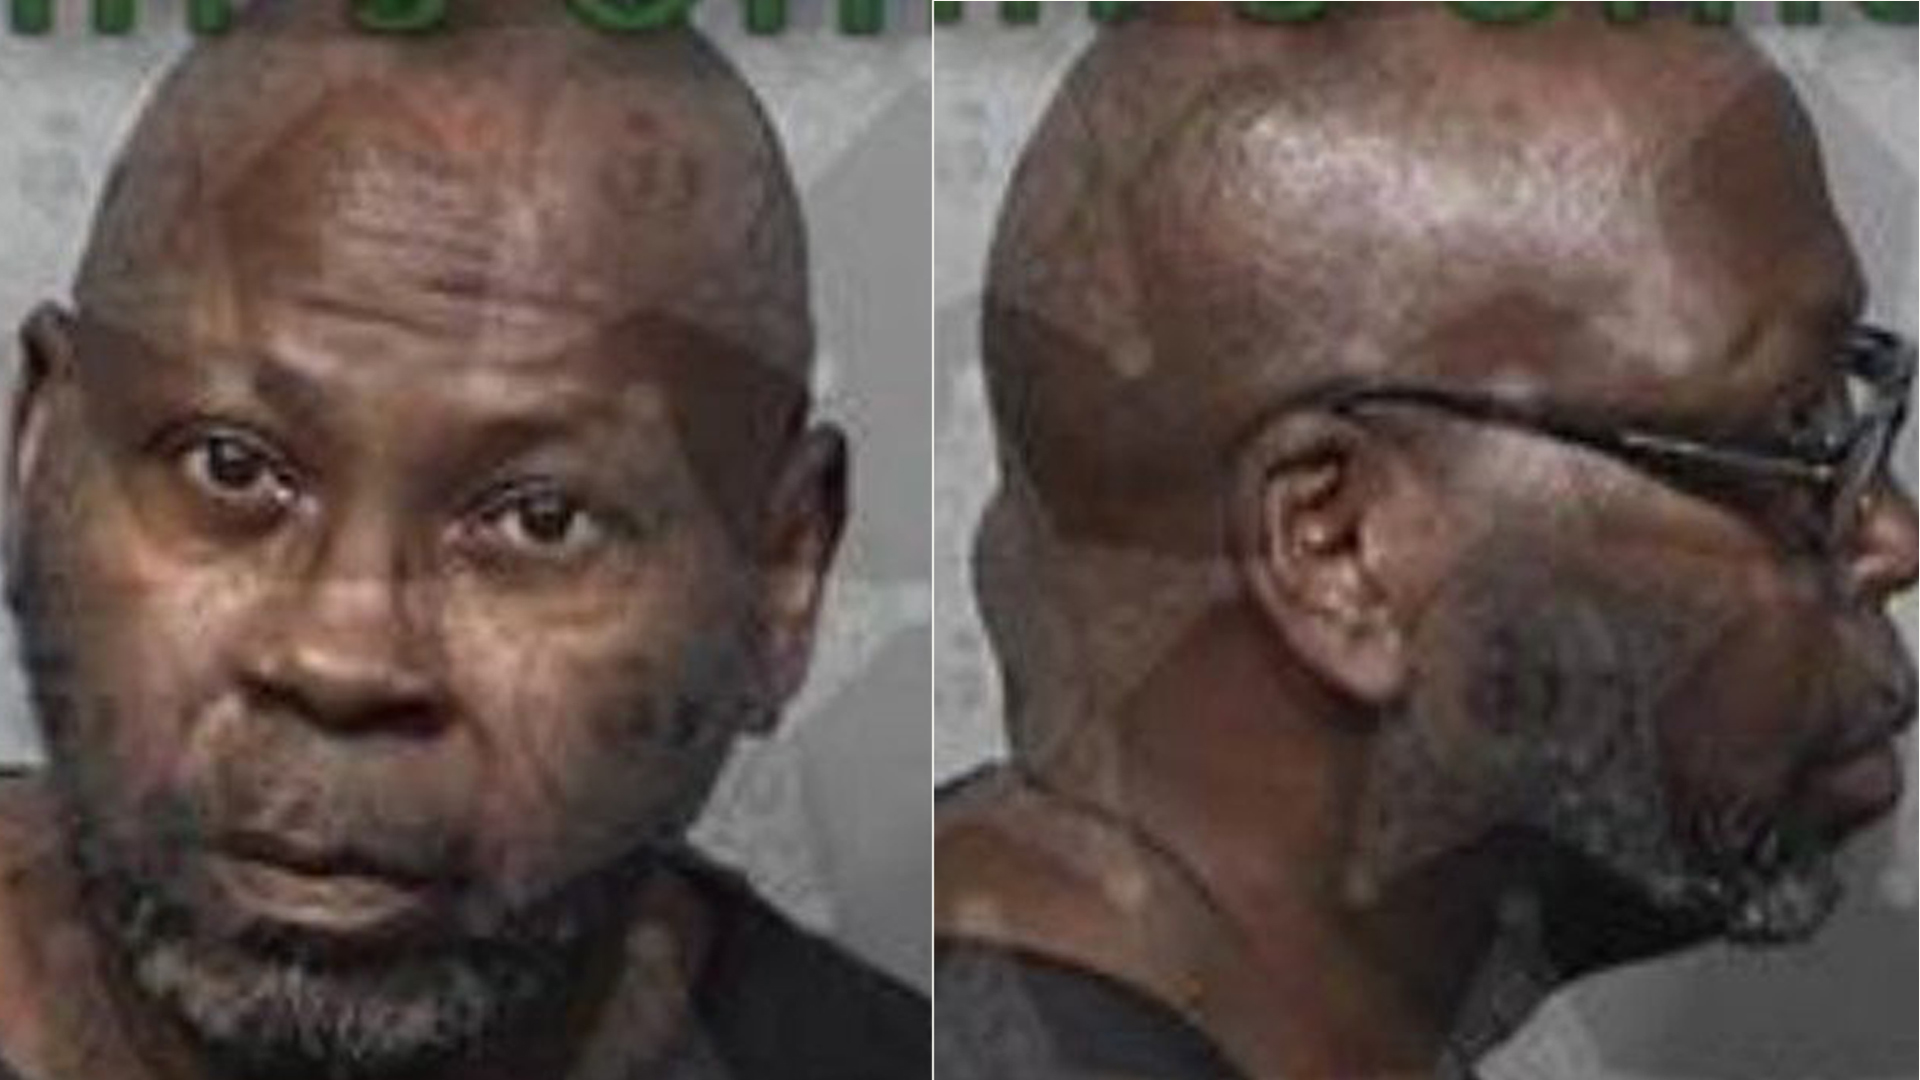 Willie Shorter Sr., 58, is seen in photos released by the Brevard County Sheriff's Office in Florida on Feb. 7, 2019.